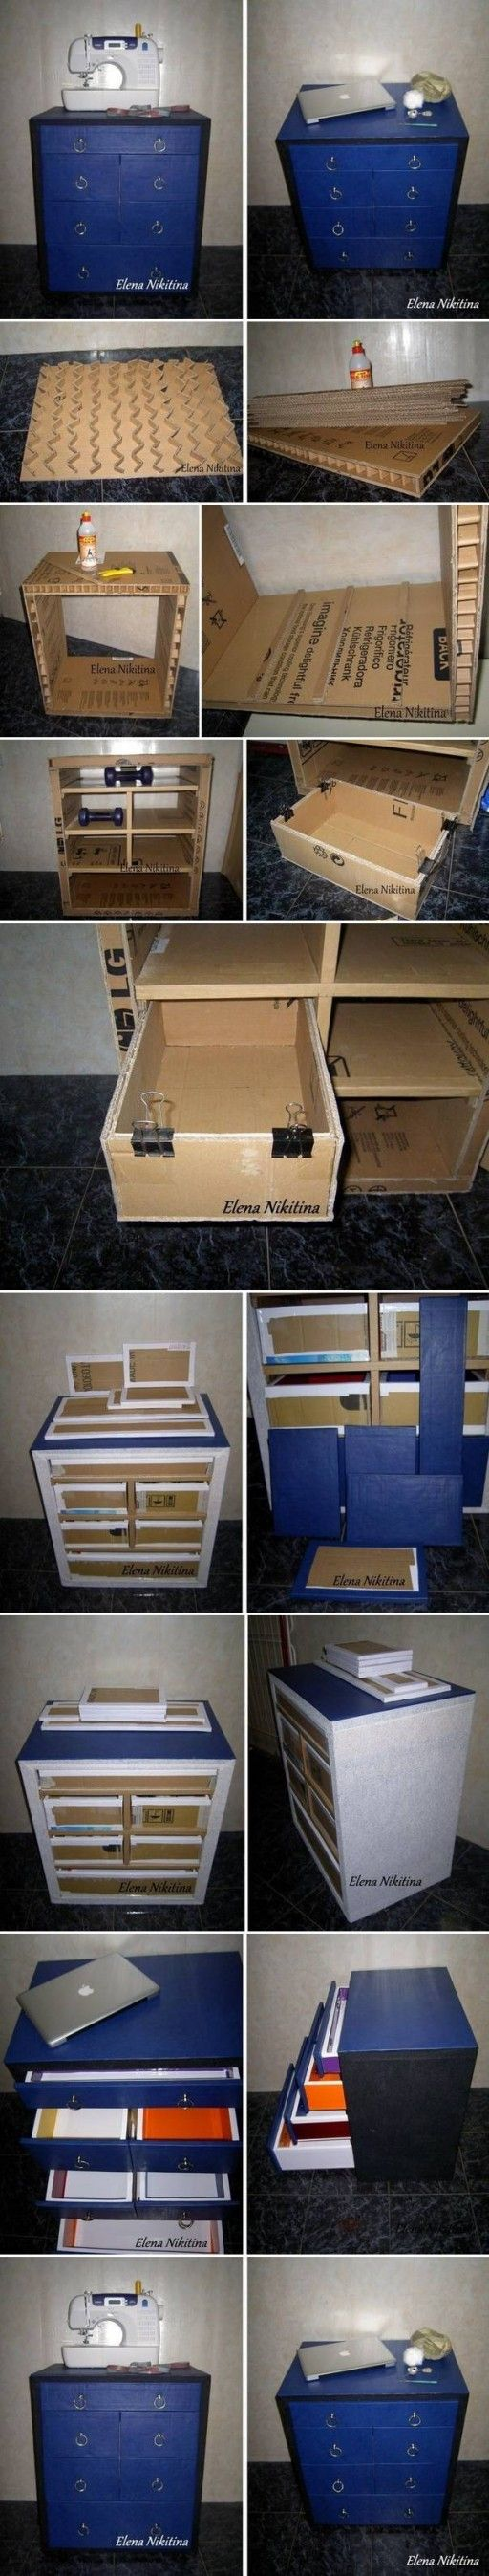 How To Make Cardboard Chest With Drawers Storage Units